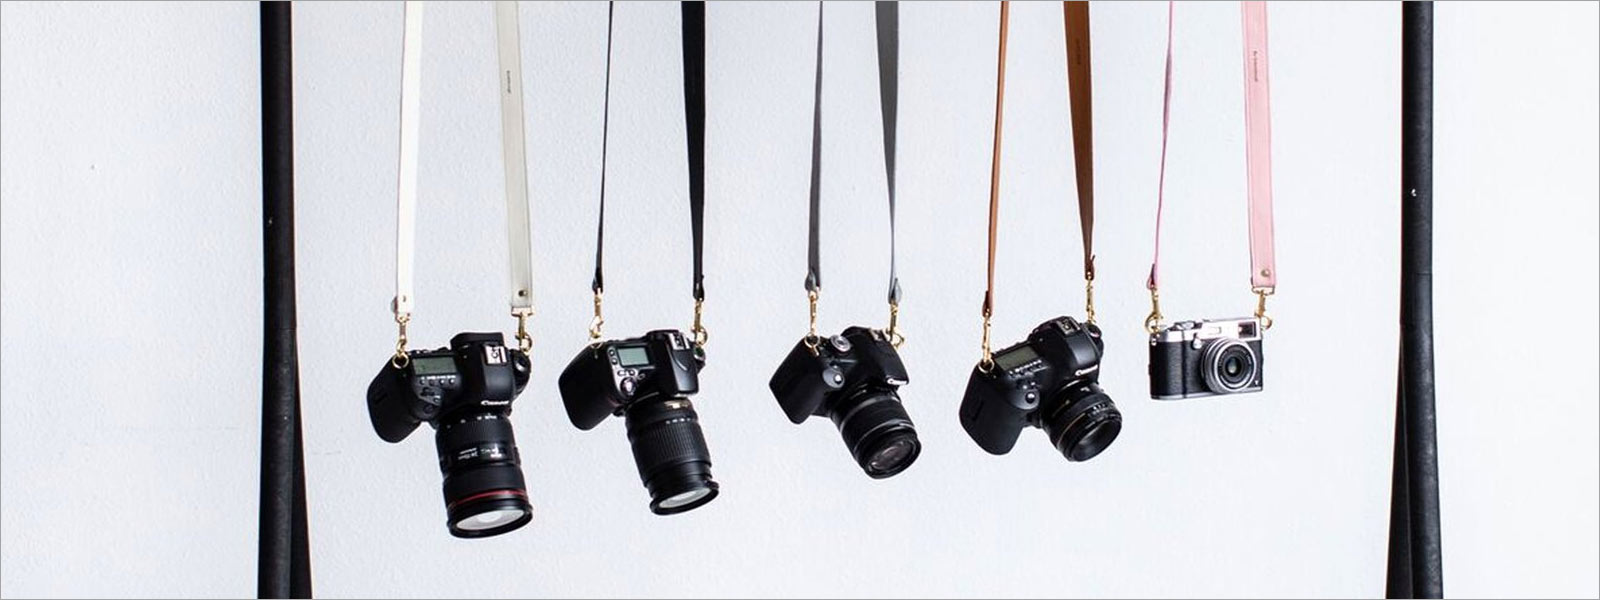 Image of personalized colorful camera straps, courtesy of FotoStrap.com